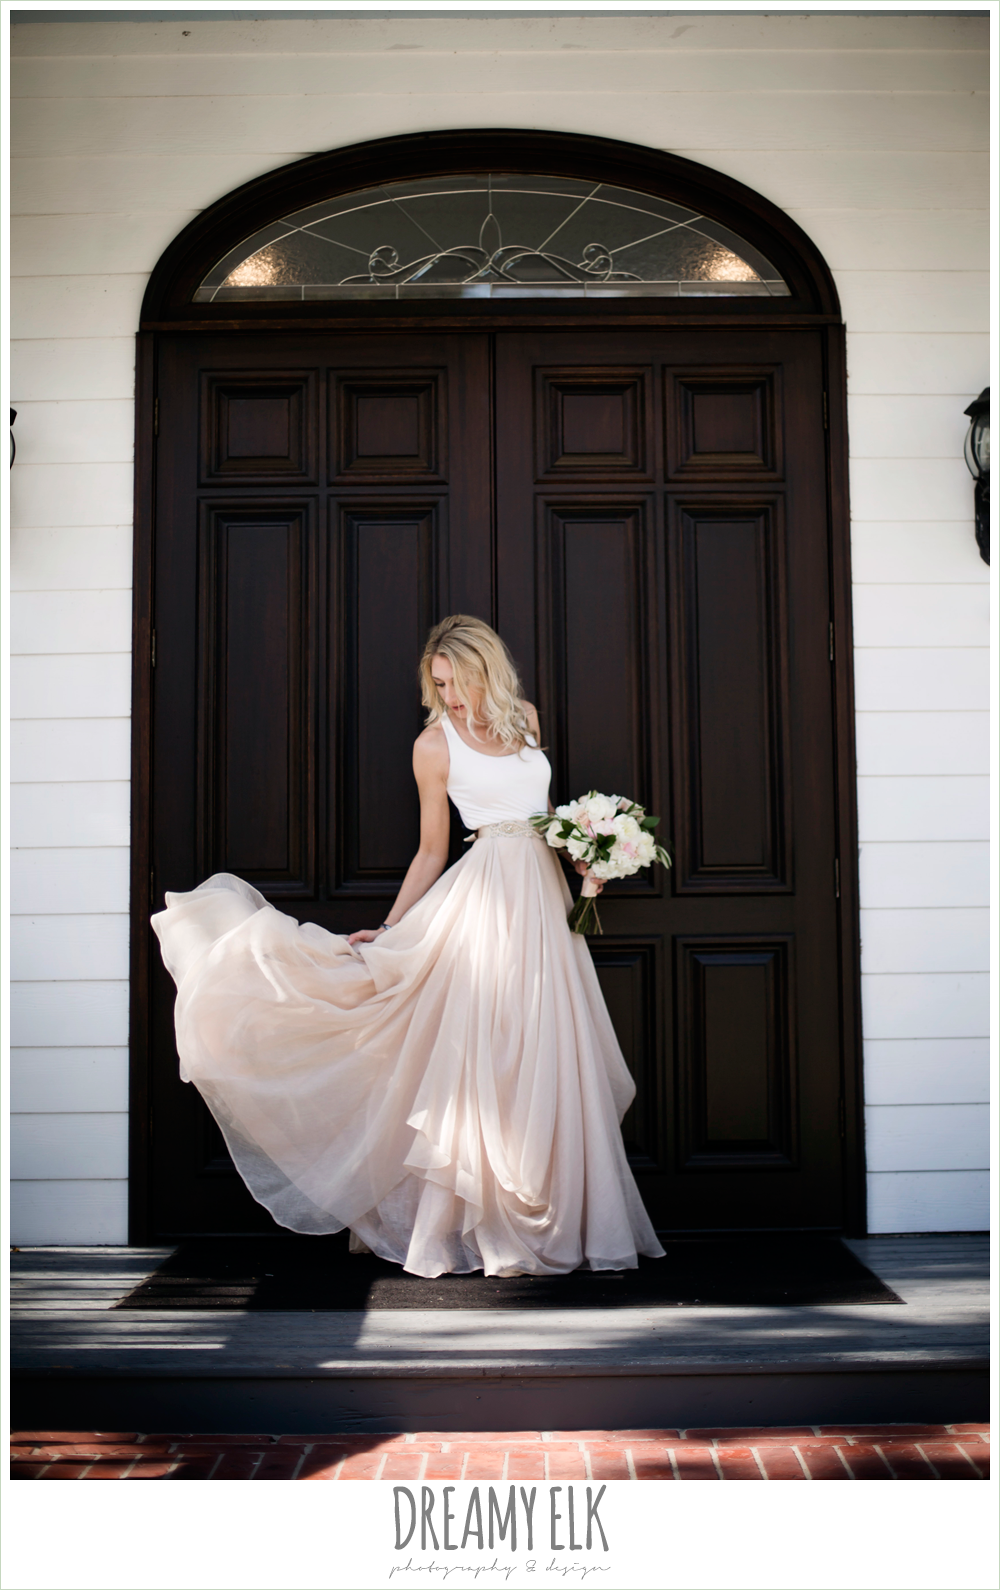 heather&jack {wedding} ashelynn manor, magnolia, texas